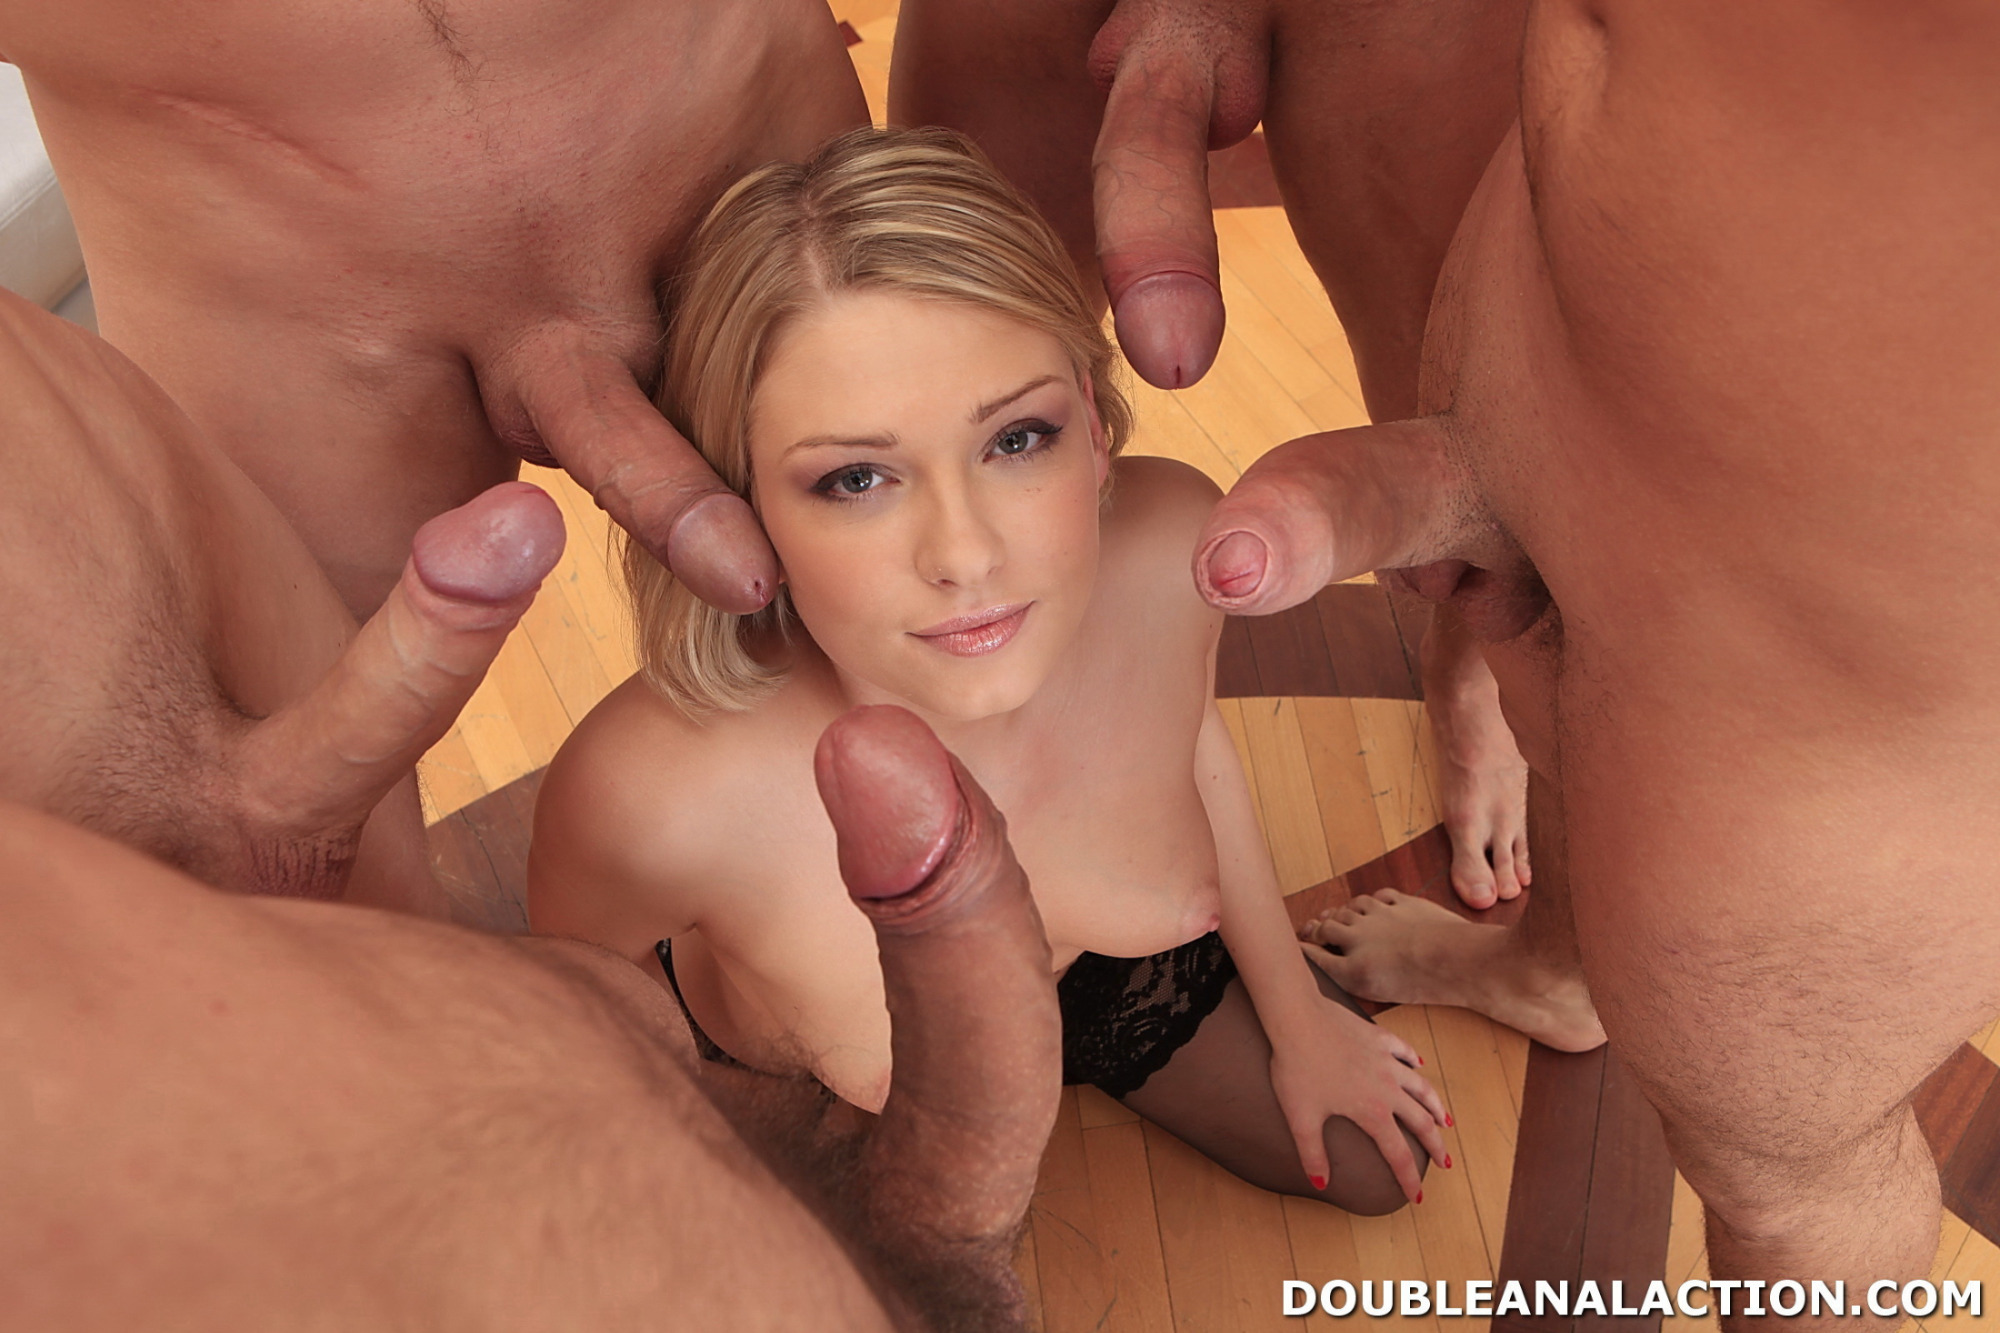 5 Guys 1 Girl Porn Videos Pornhubcom